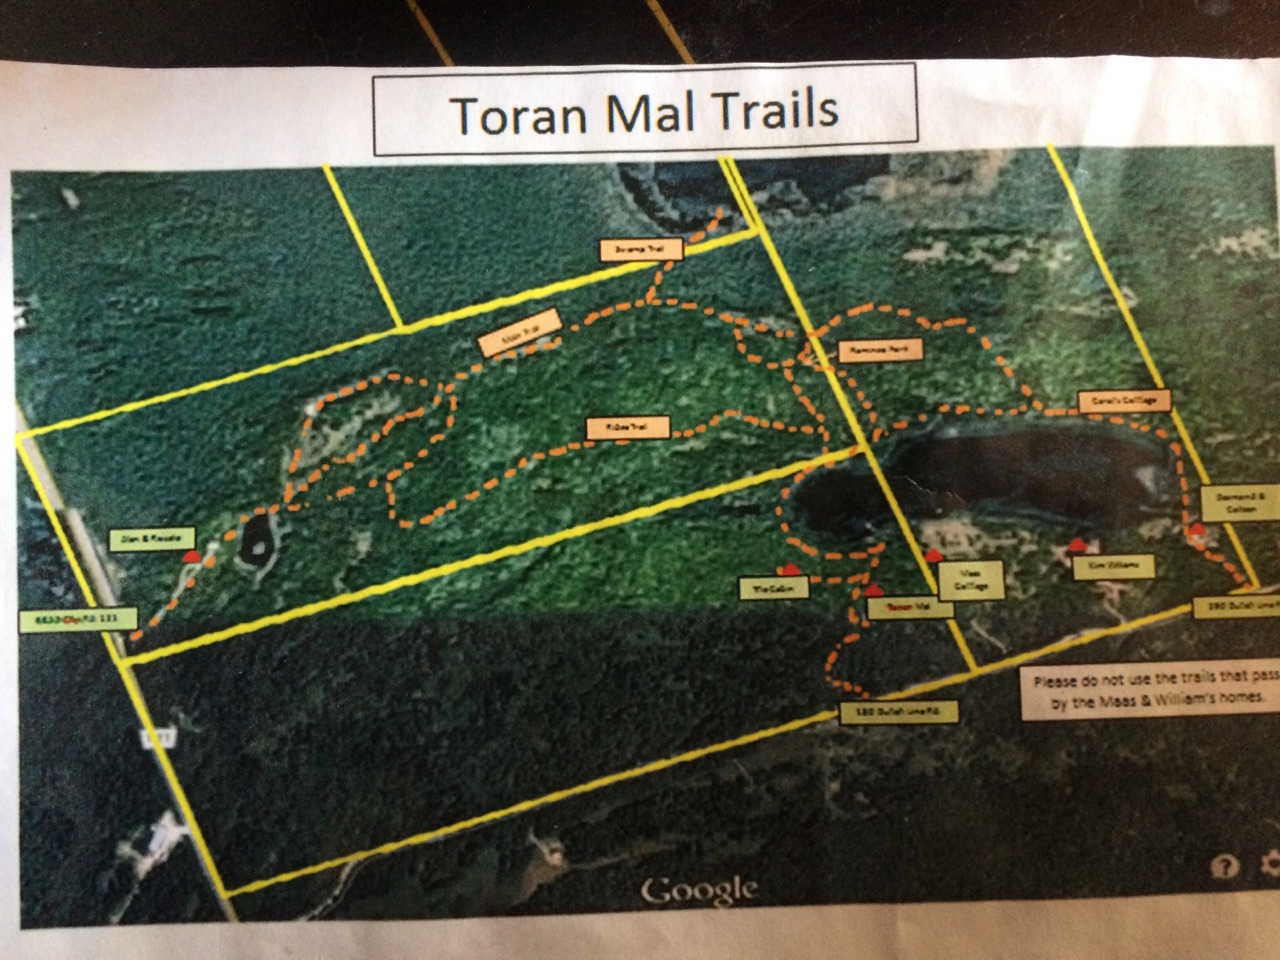 Toran Mal Trails copy